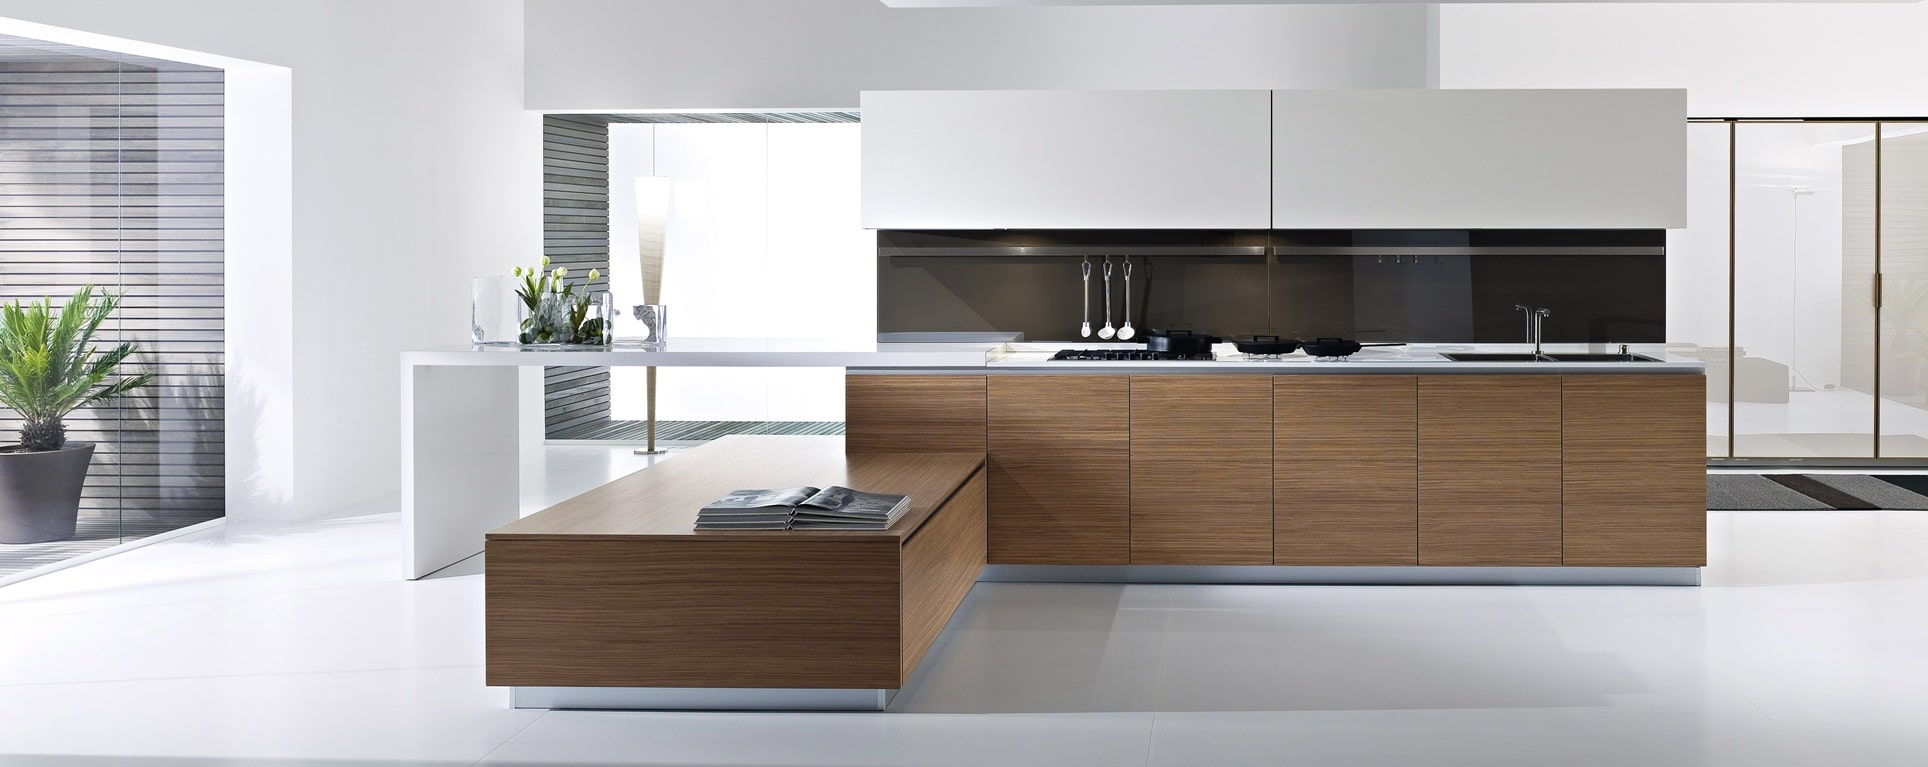 Modern Kitchen Designs At Affordable Prices Lebanon